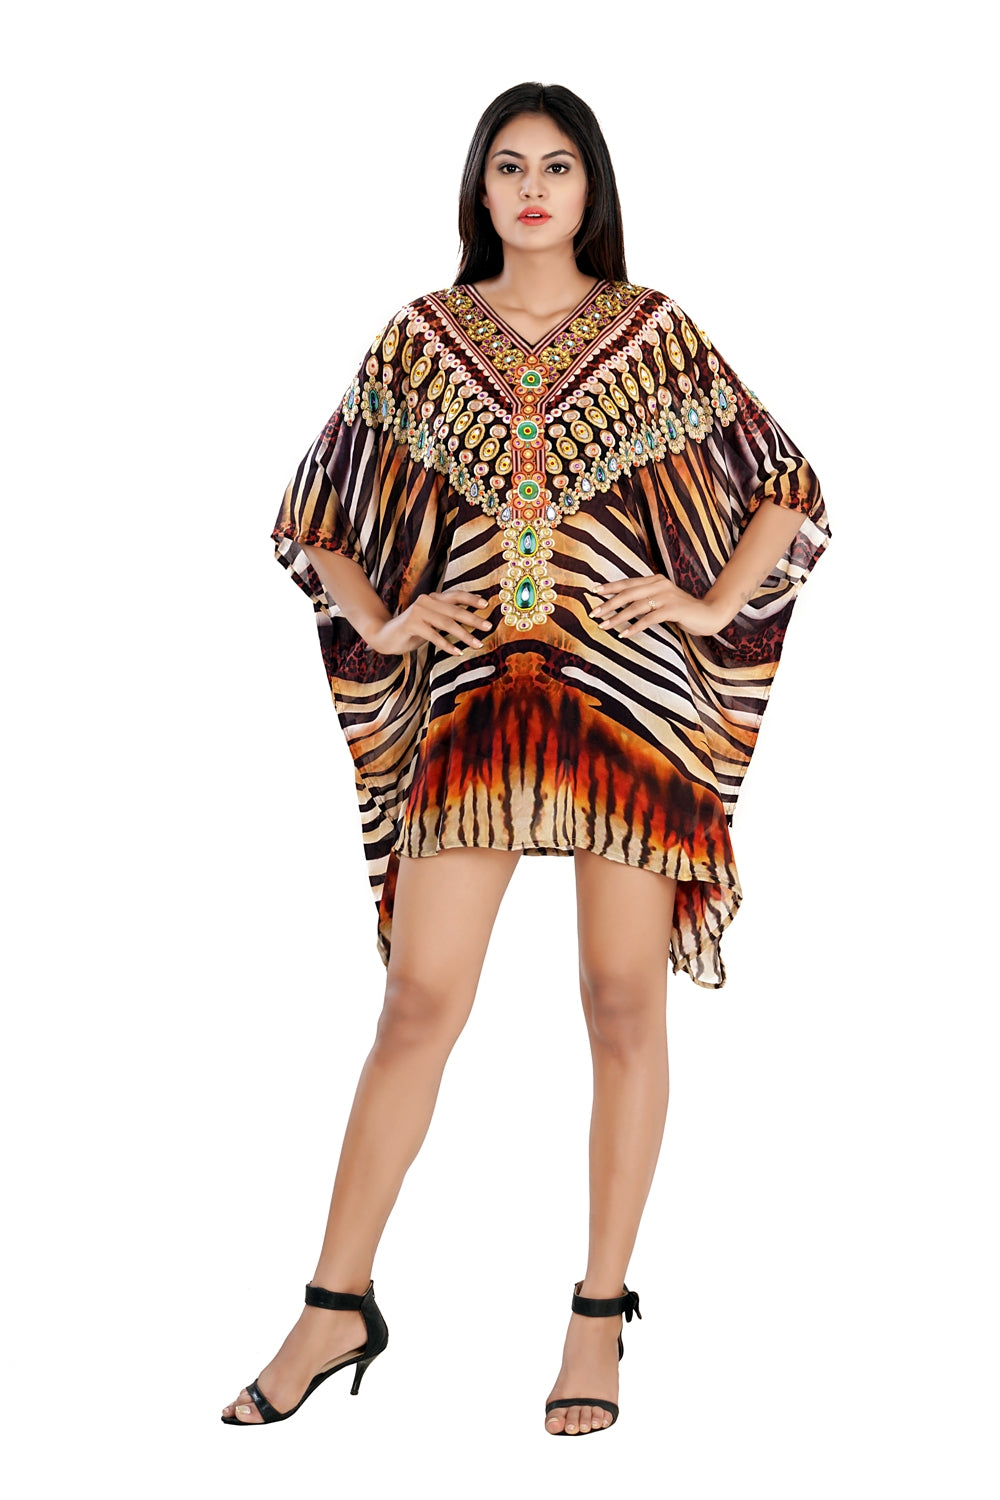 Silk Kaftan with heavily Embellishment short unique kaftan dress Beach Wear Cover Up - Silk kaftan